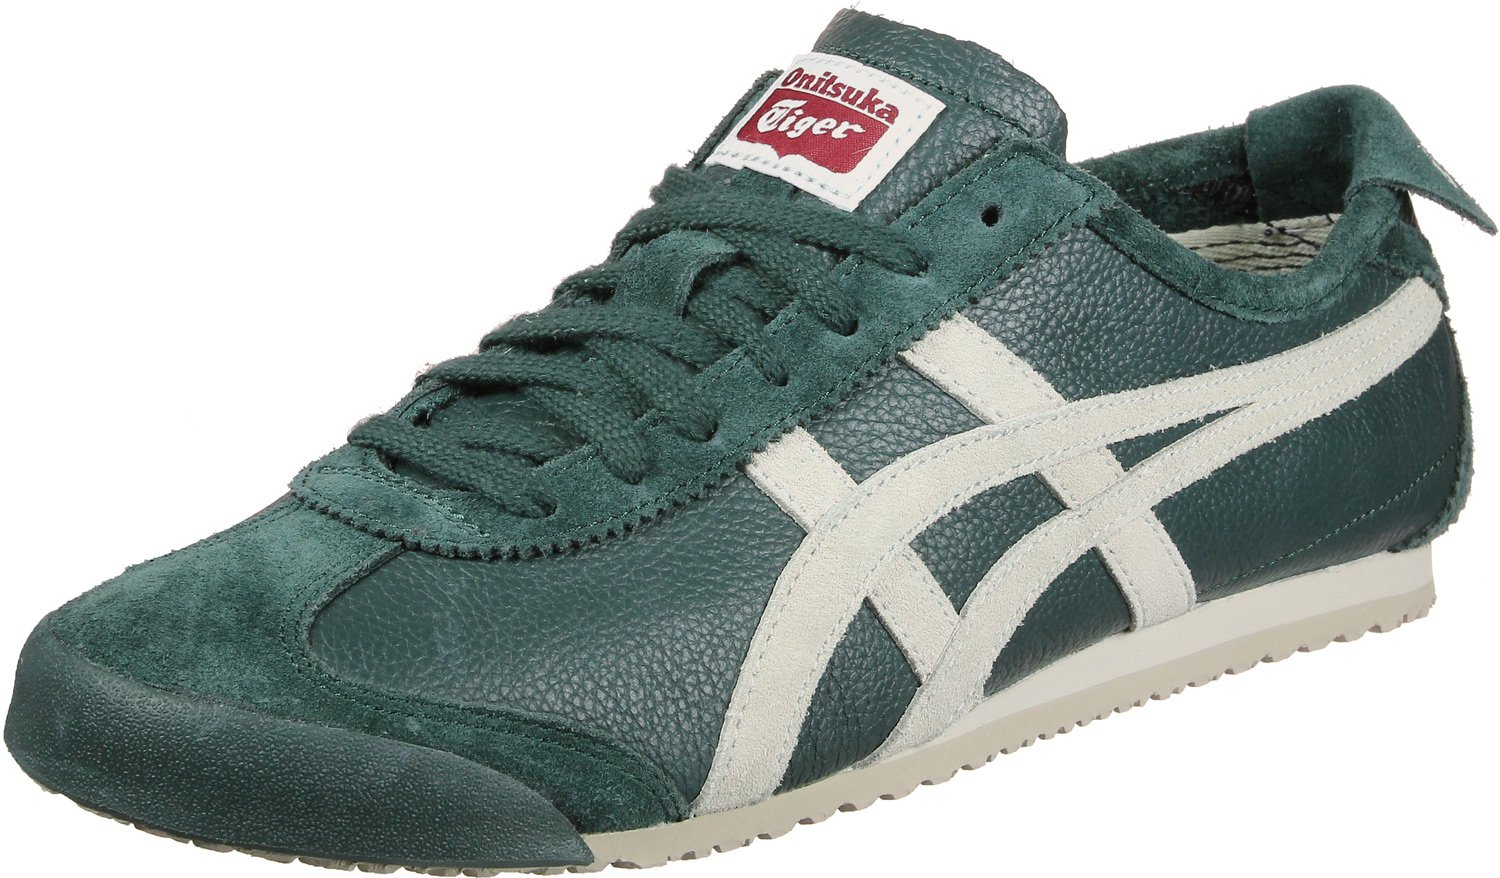 Onitsuka Tiger Mexico 66 Vin Dark Forest Feather Grey  44.5 EU|Gr眉n